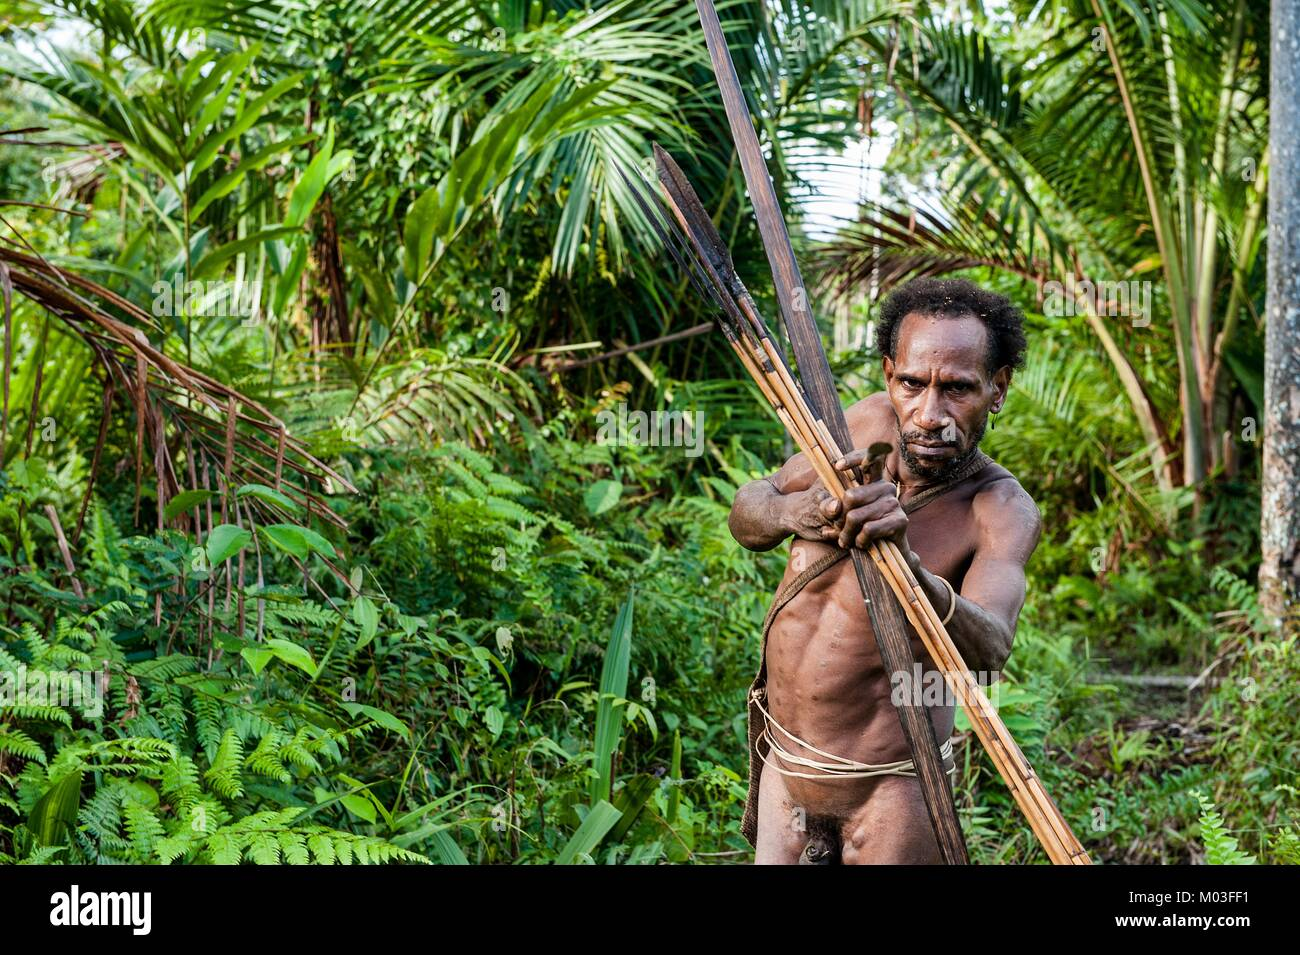 Korowai Tribe Stock Photos & Korowai Tribe Stock Images - Alamy